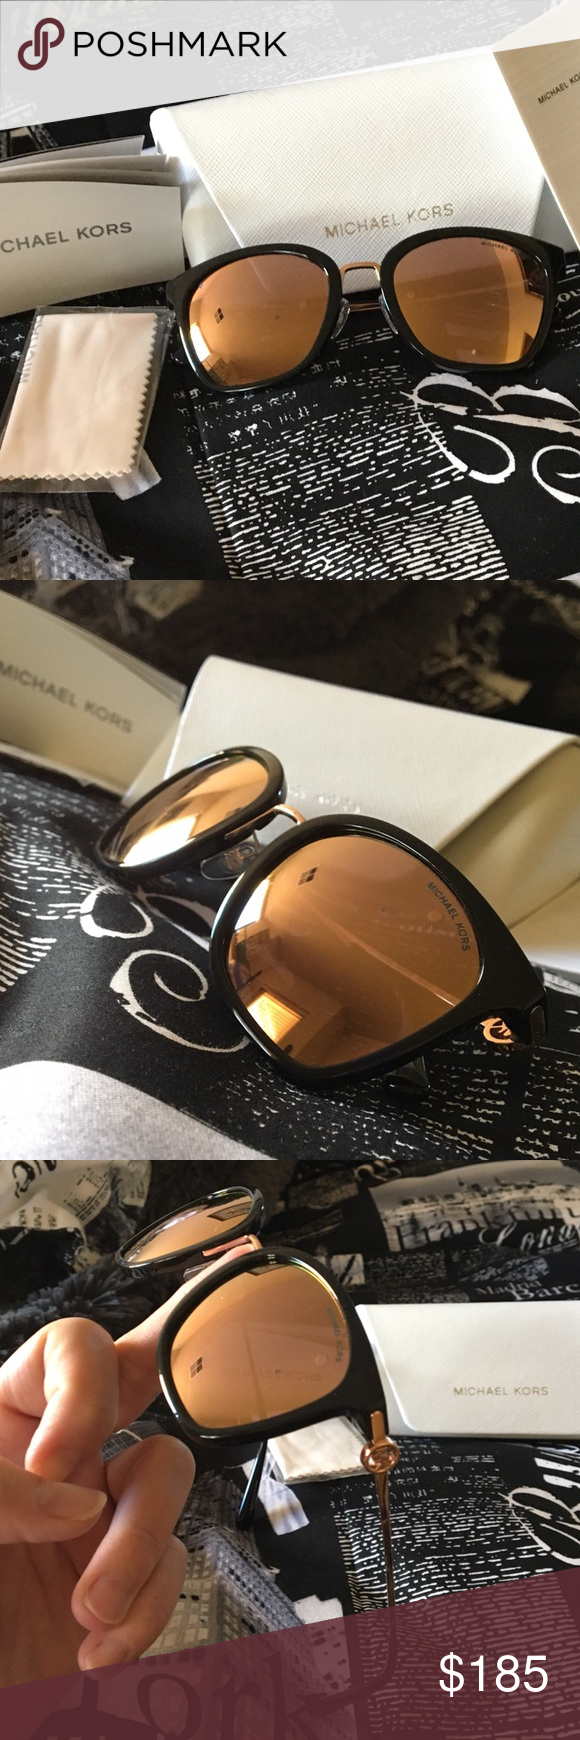 5208f81f1f Michael Kors Lugano Square Sunglasses 😎 On trend! New to the collection